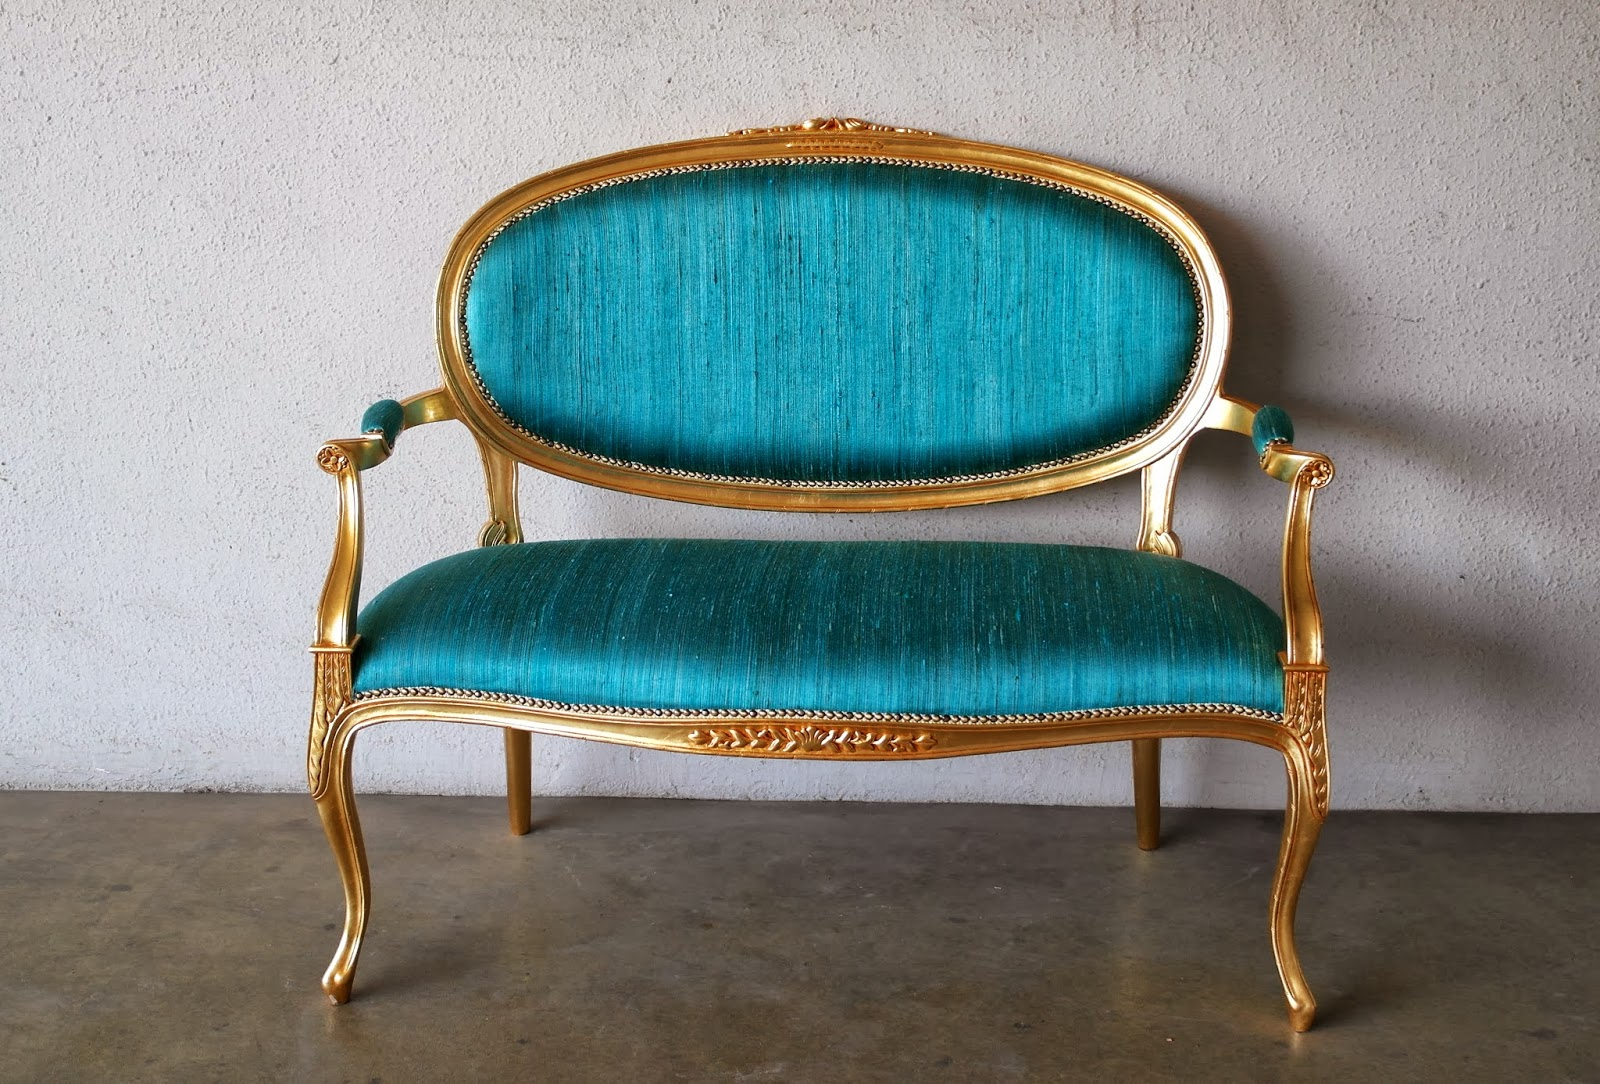 French furniture - Passionately French Furniture Classic And Modern Second Charm